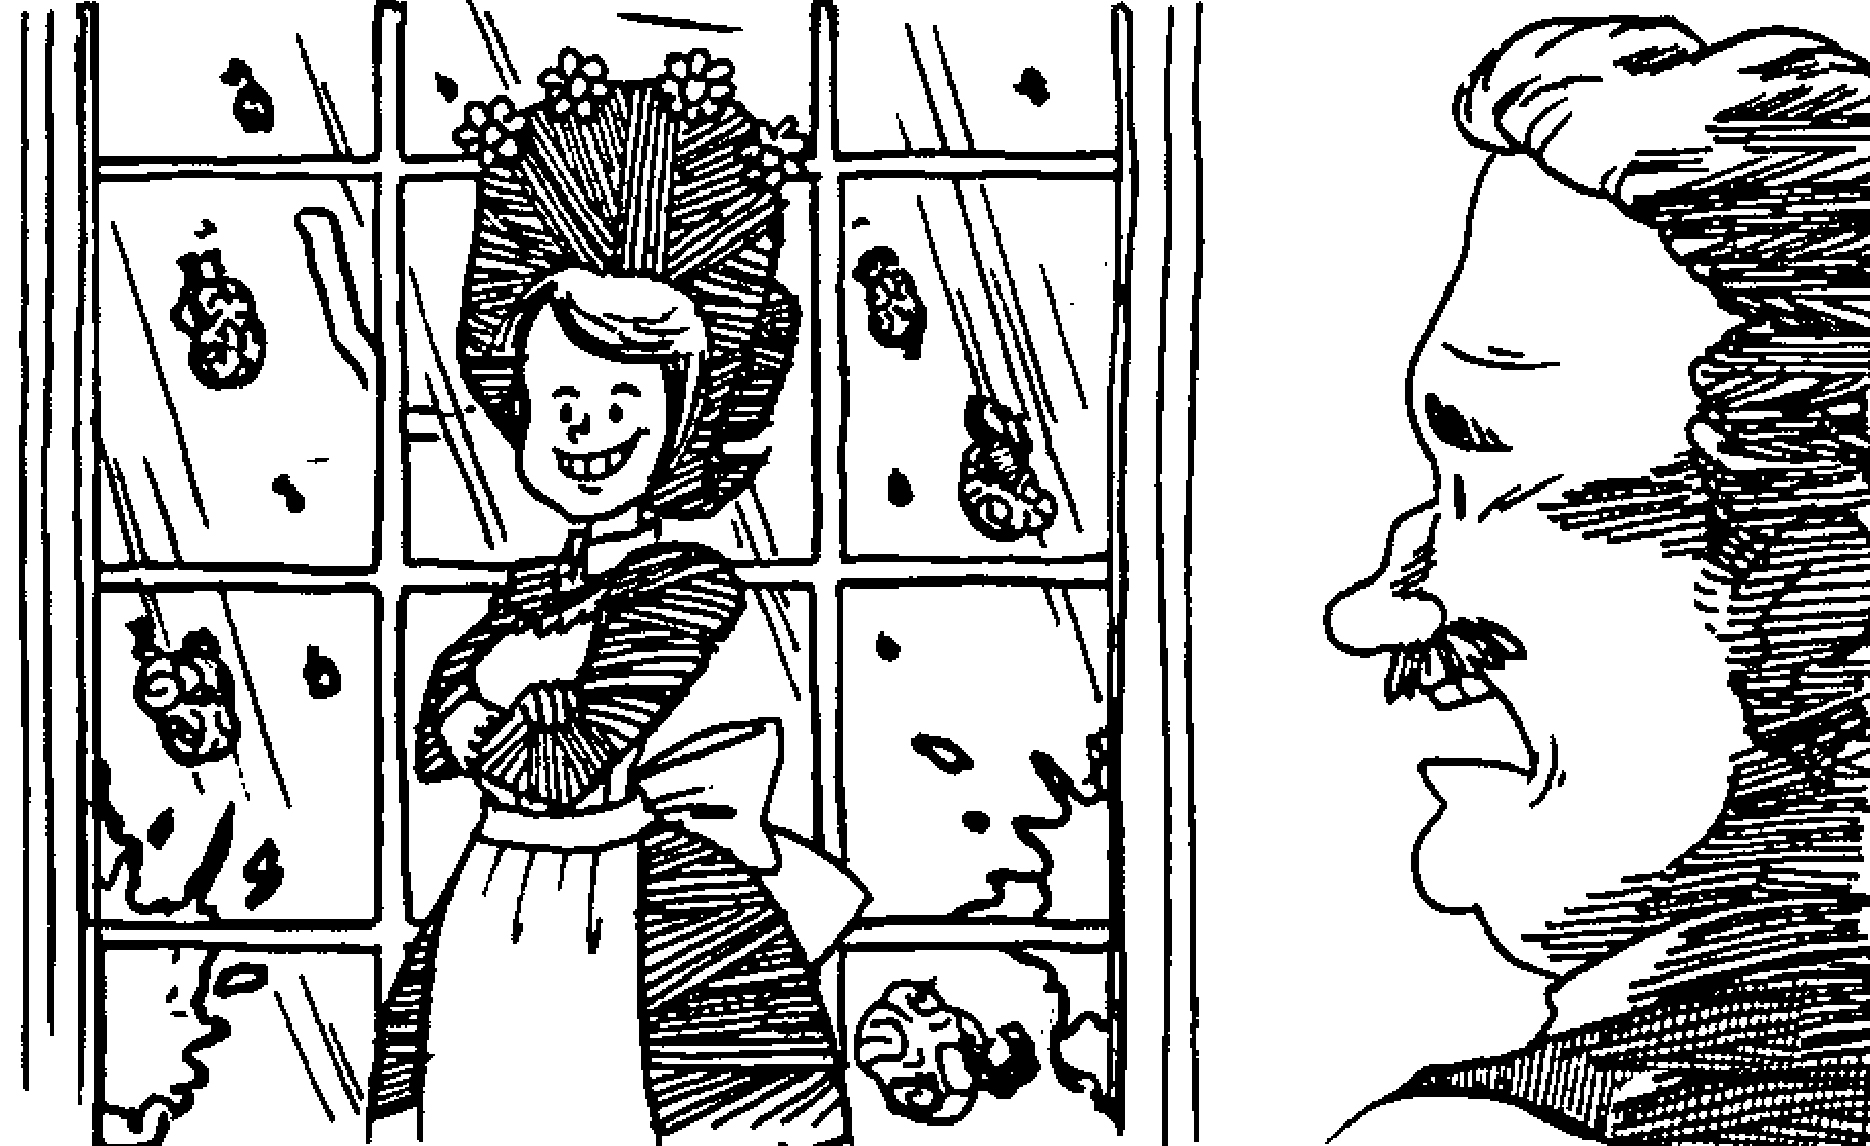 amelia bedelia coloring pages images for adults | Amelia Bedelia Window Coloring Page | Wecoloringpage.com